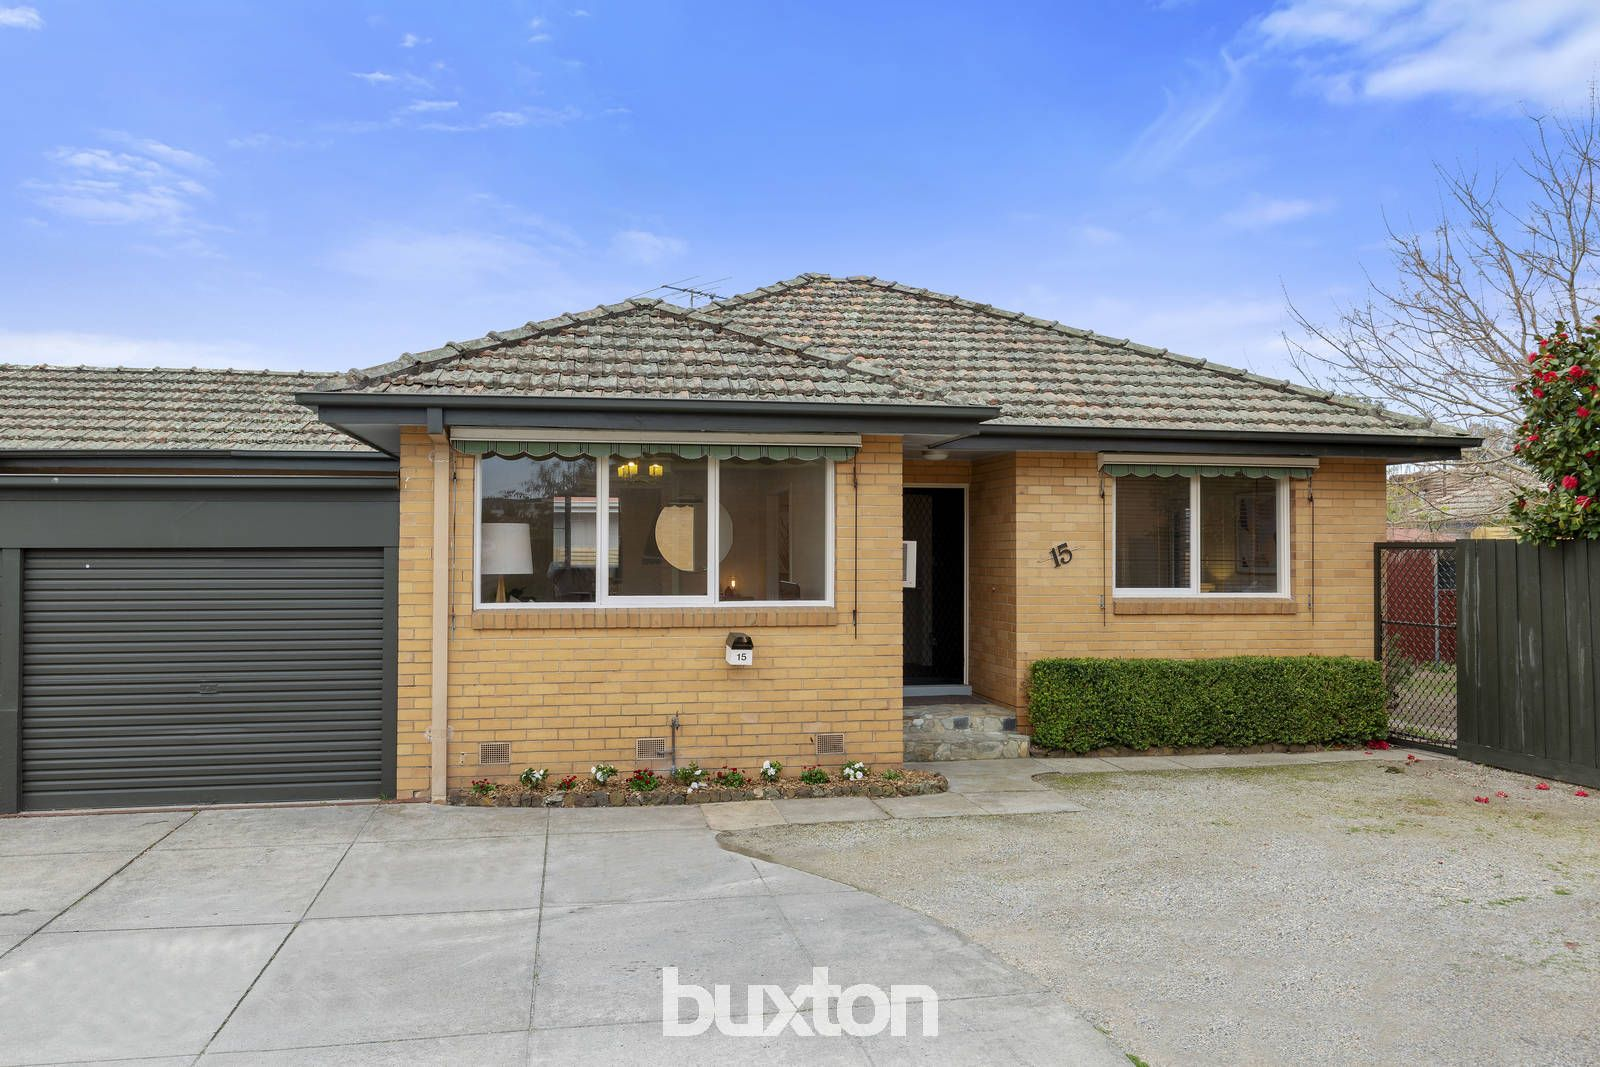 15/27 Patterson Road, Bentleigh VIC 3204, Image 0